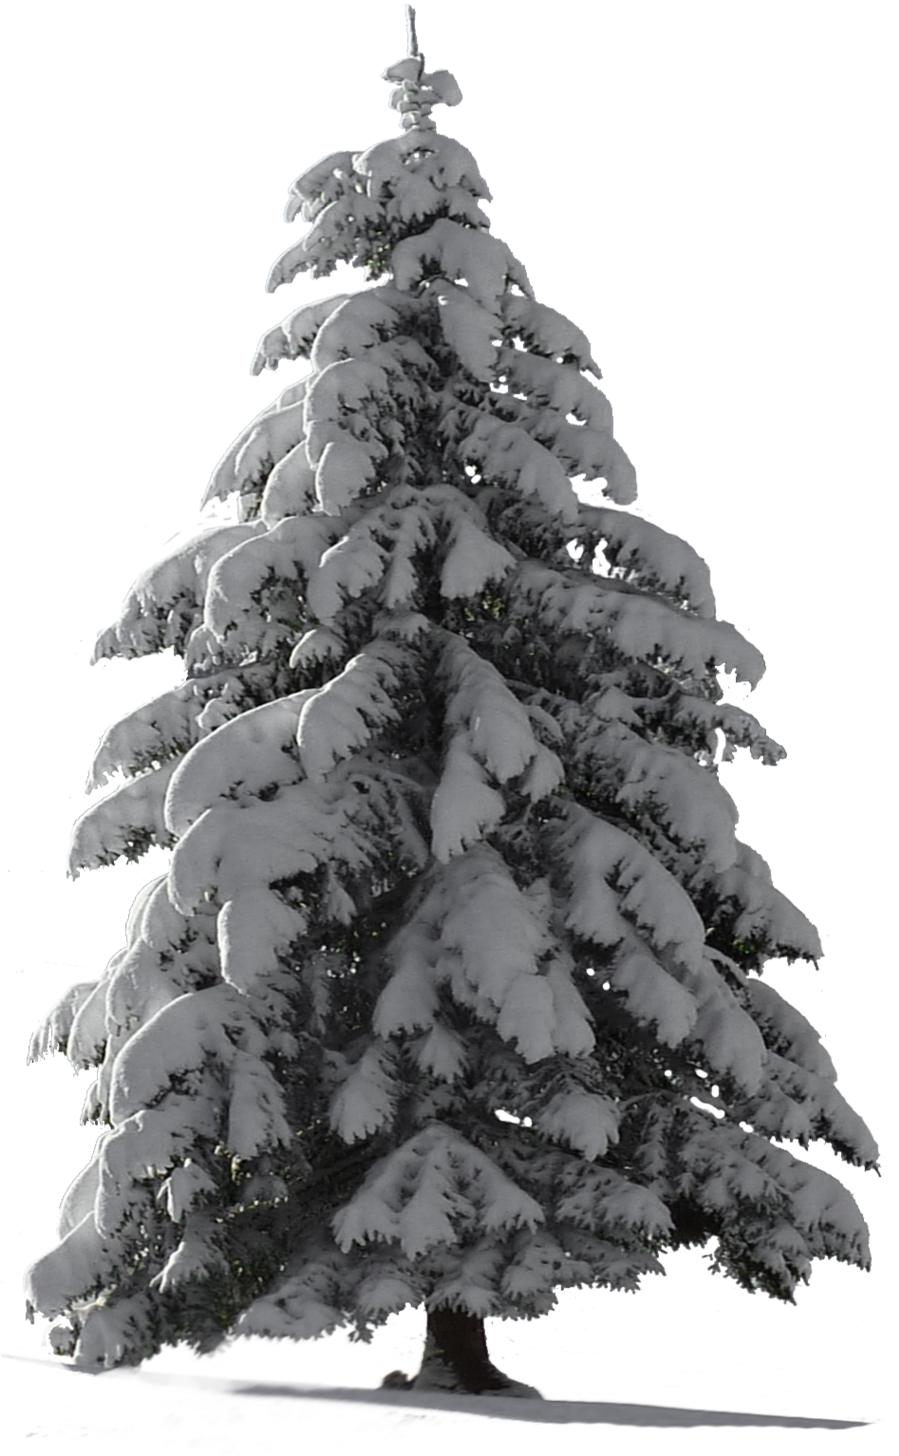 Transparent winter tree clipart black and white - Snow Pine Png - Christmas Tree Snow Png